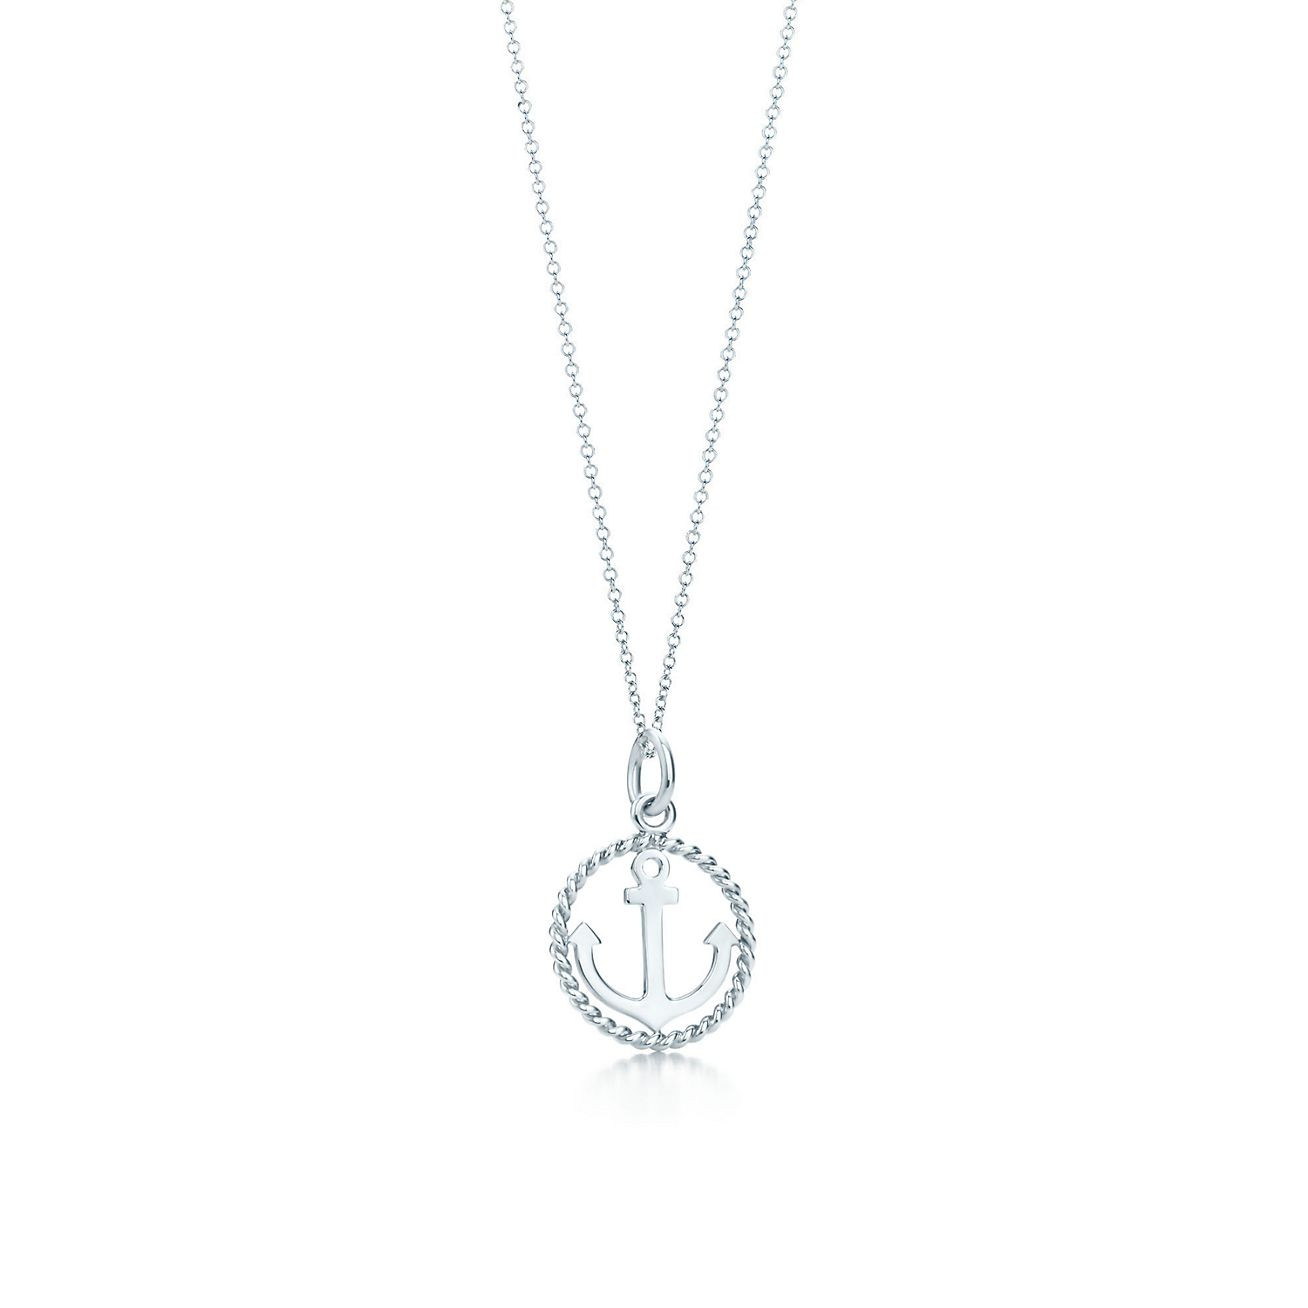 Jewelry Necklaces Pendants Tiffany Twist Anchor Charm And Chain Grp04677 Tiffany Chain Necklace